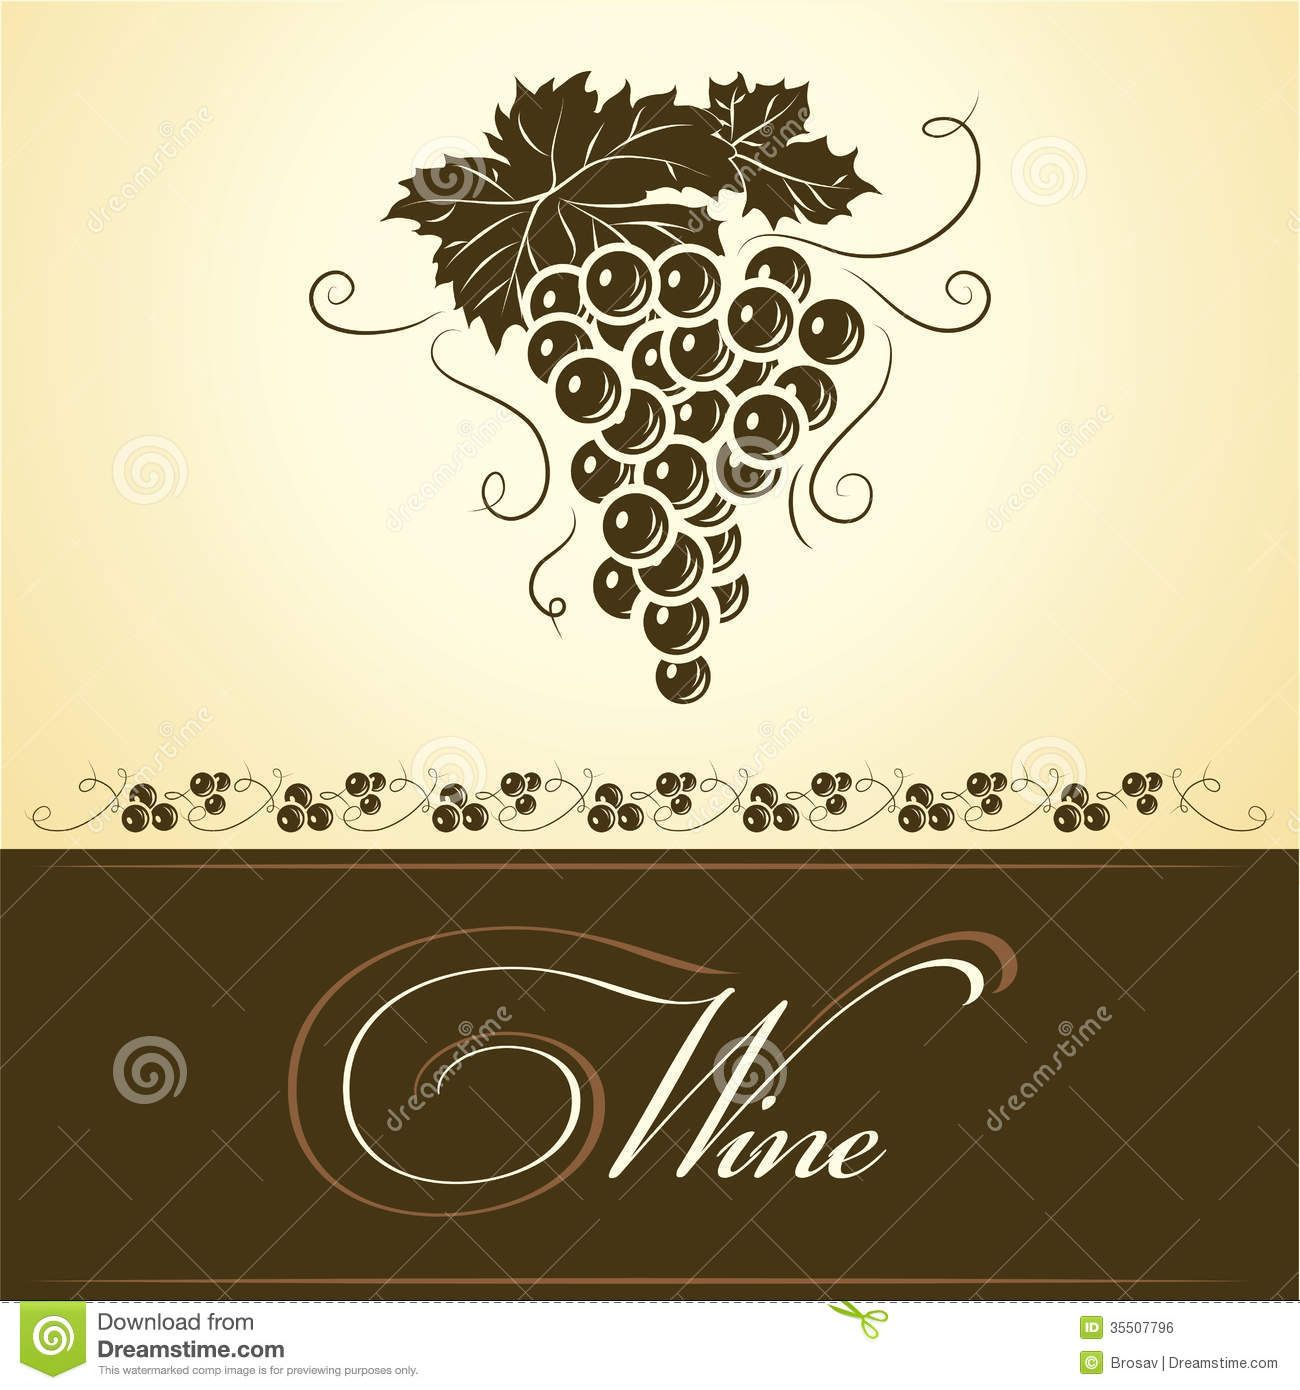 Delightful Printable Wine Bottle Labels Ideas Free Wine Bottle Label Templates